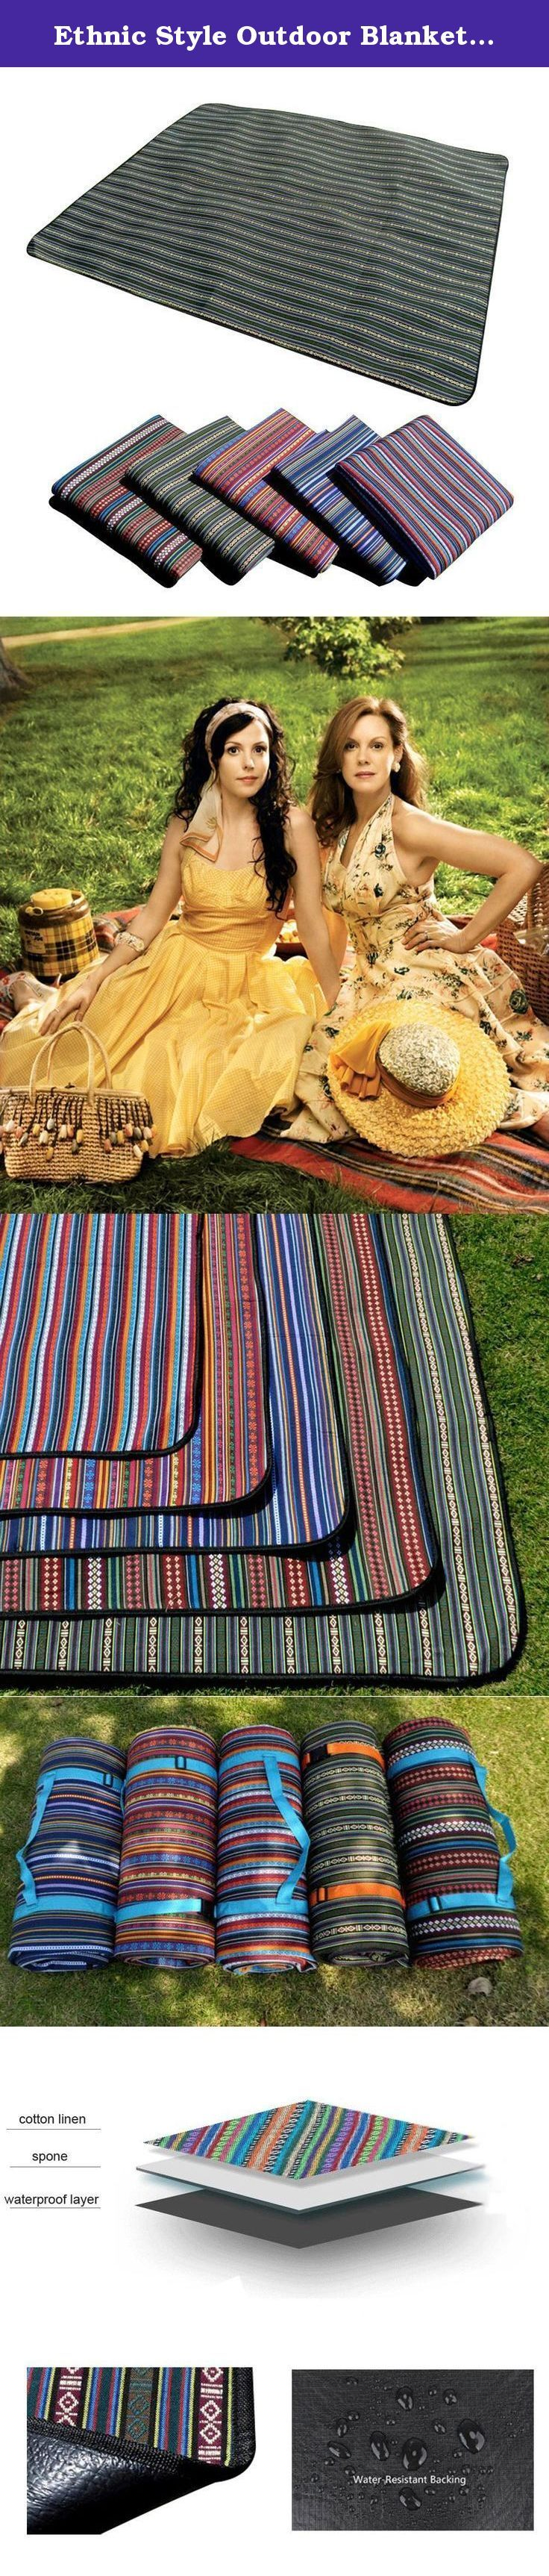 Ethnic Style Outdoor Blanket Water-Resistant Outdoor Mat 60in/55in For Picnic, Beach, Traveling, Camping, Hiking (A-3). UHAPPY OUTDOOR BLANKET Questions: 1.Are you tired of getting wet when picnicing in grass? 2.Do you come home from the beach with a blanket full of sand? 3.Do you get cold watching your home team at the stadium sitting on a hard, sometimes wet, chair or bench? 4.Do you wish you had a handy protective pad when moving stuff in your car? 5.Does your outdoor blanket feel more...